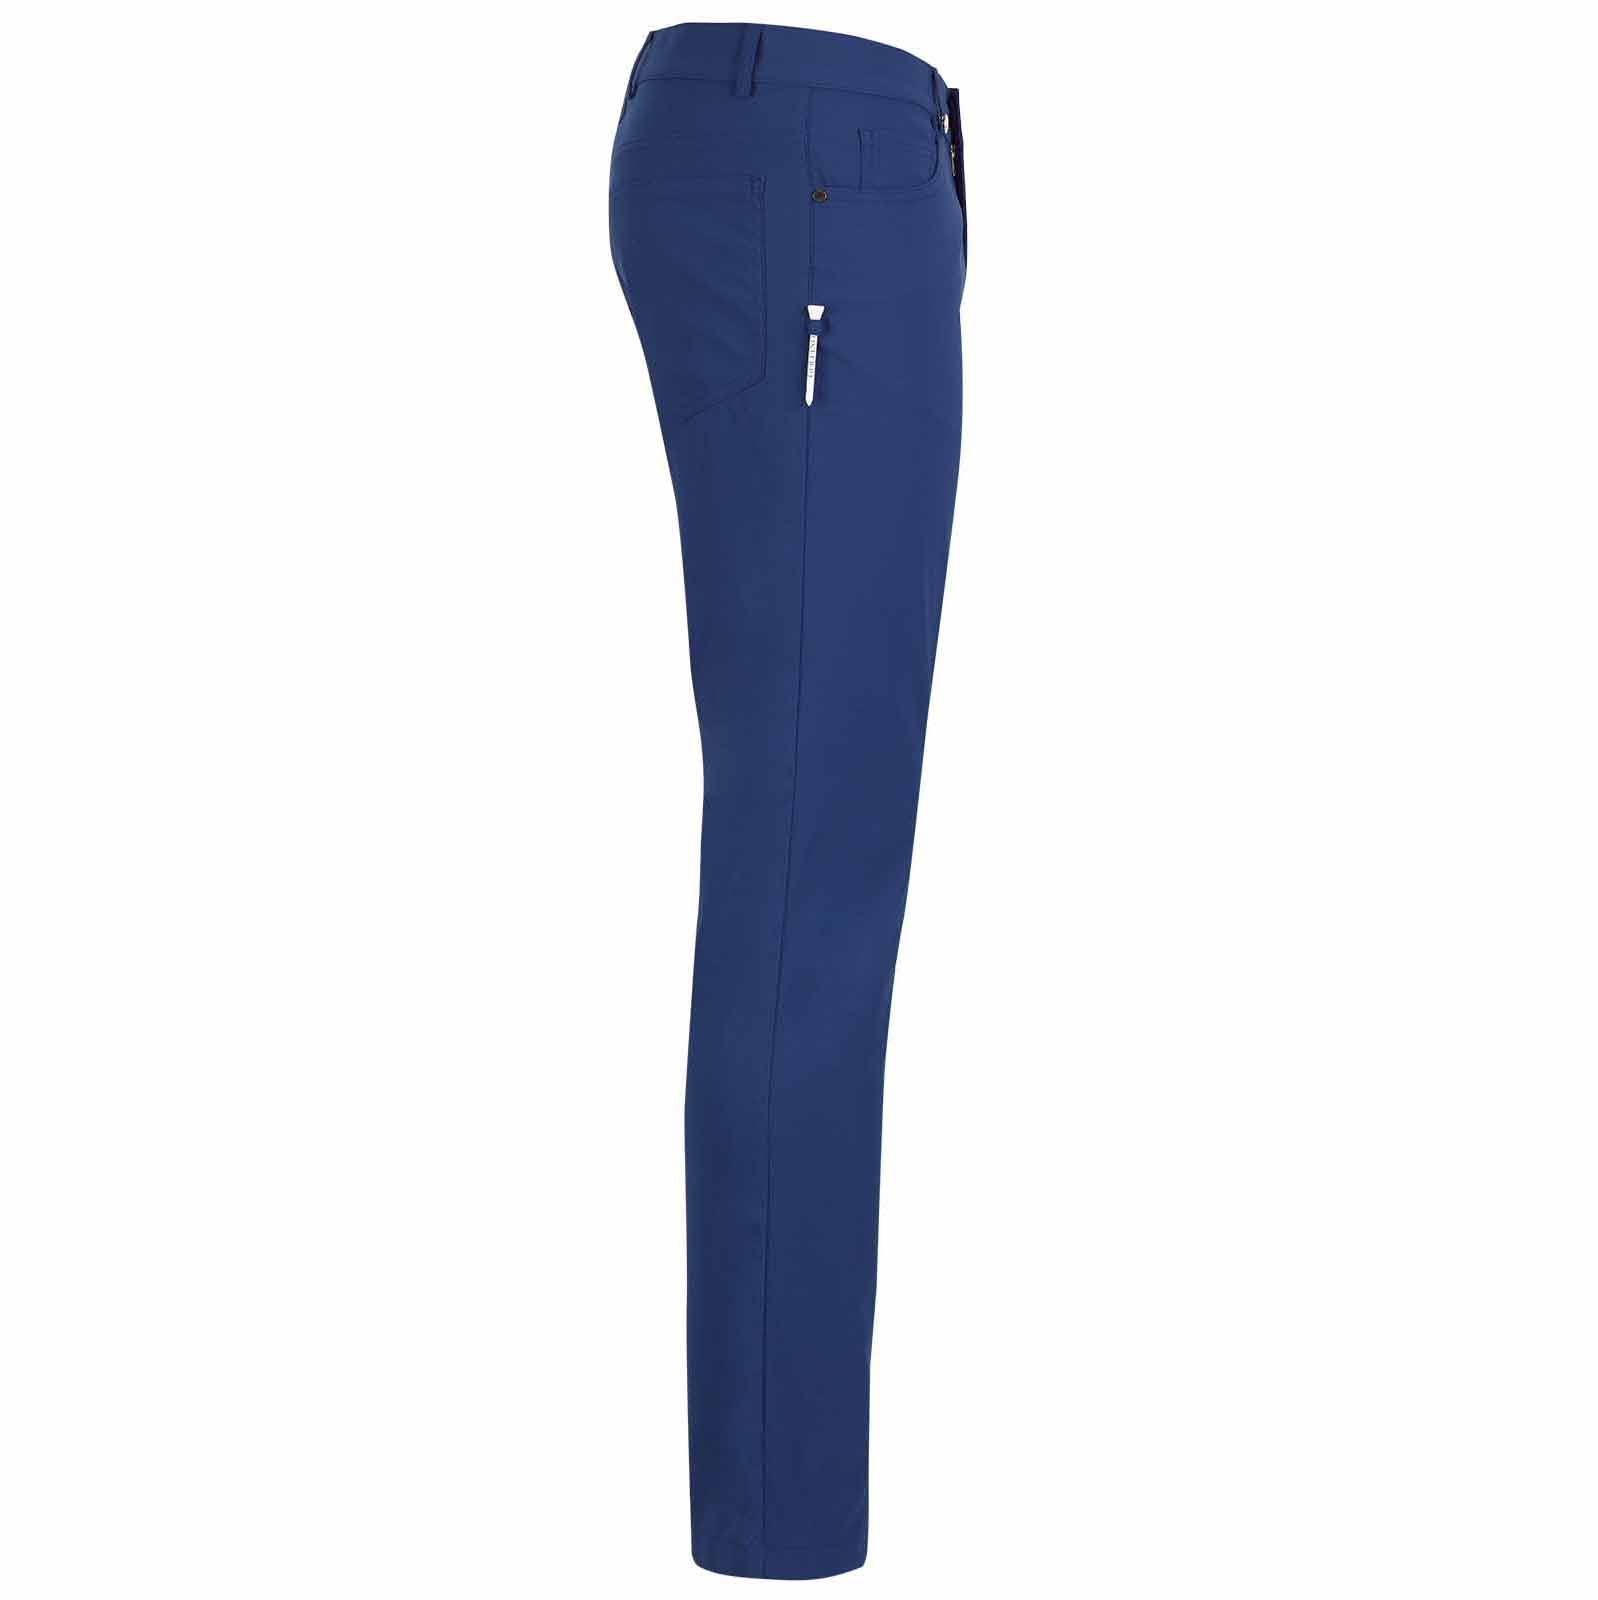 Herren Light Techno-Stretch Golfhose Sofiguard mit Anti-UV Funktion in Slim Fit